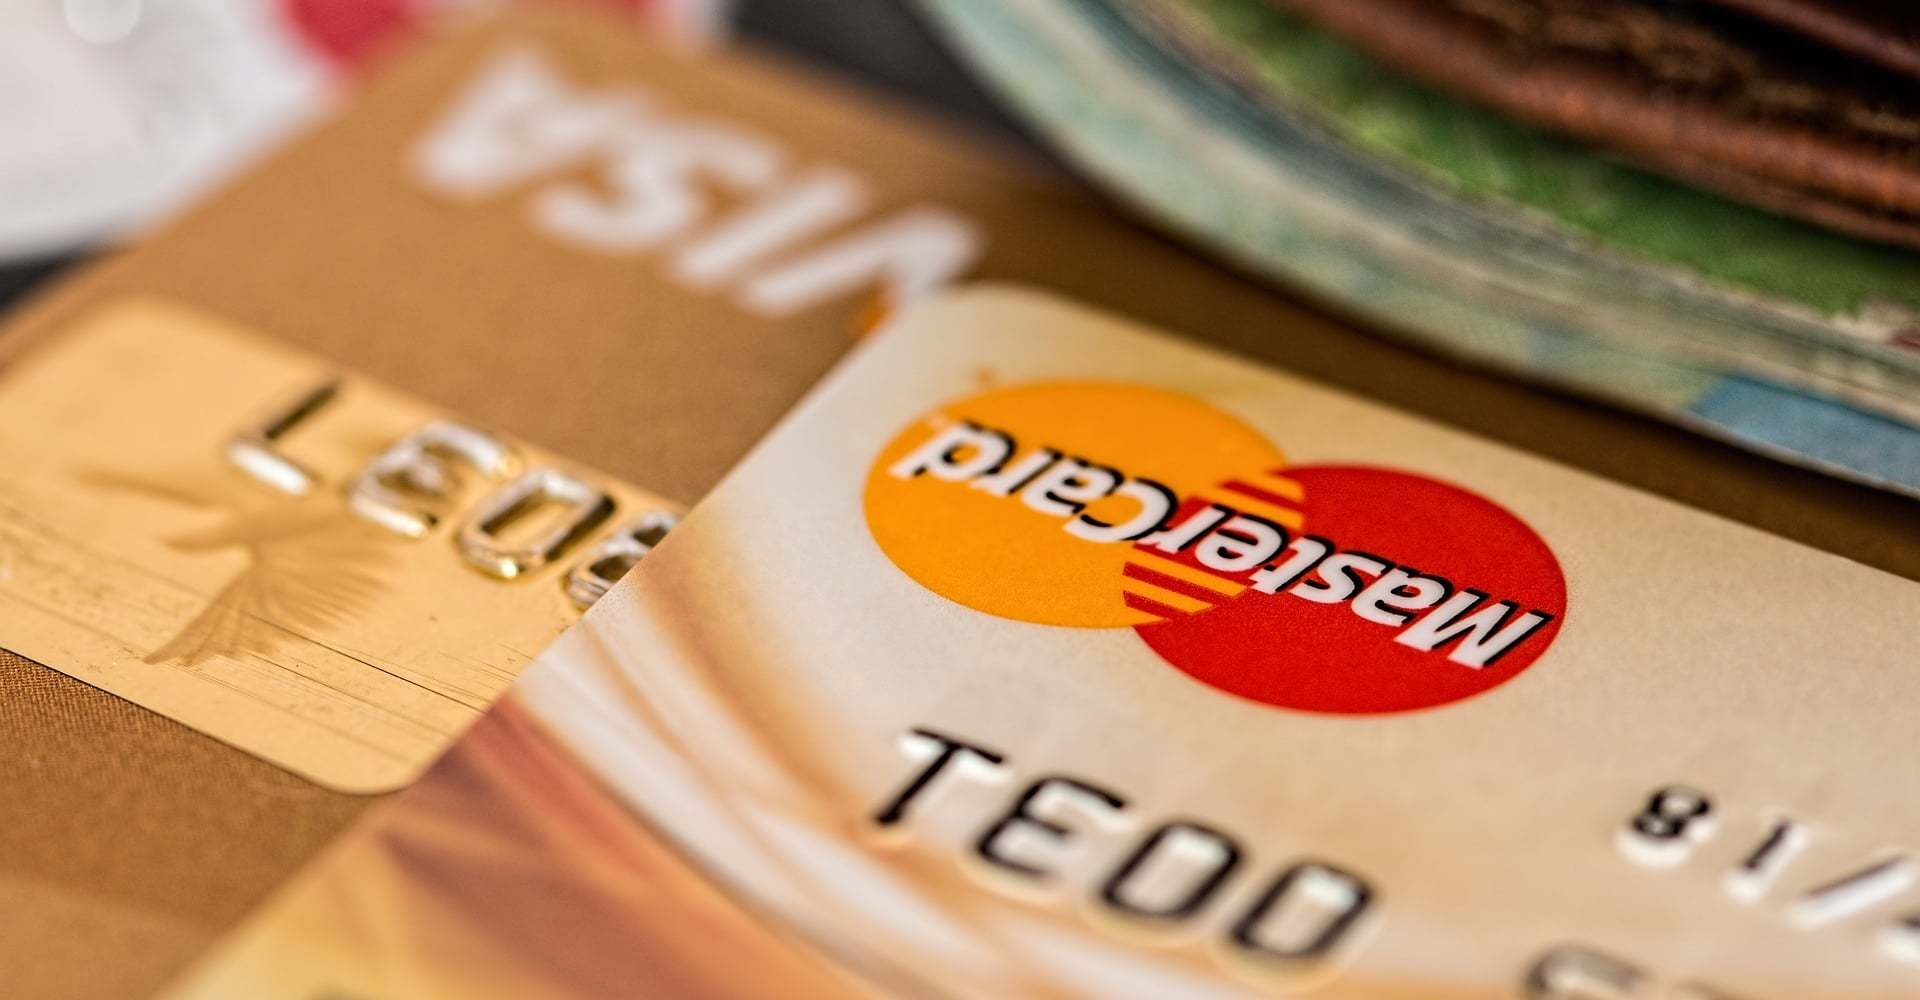 History of the Credit Card